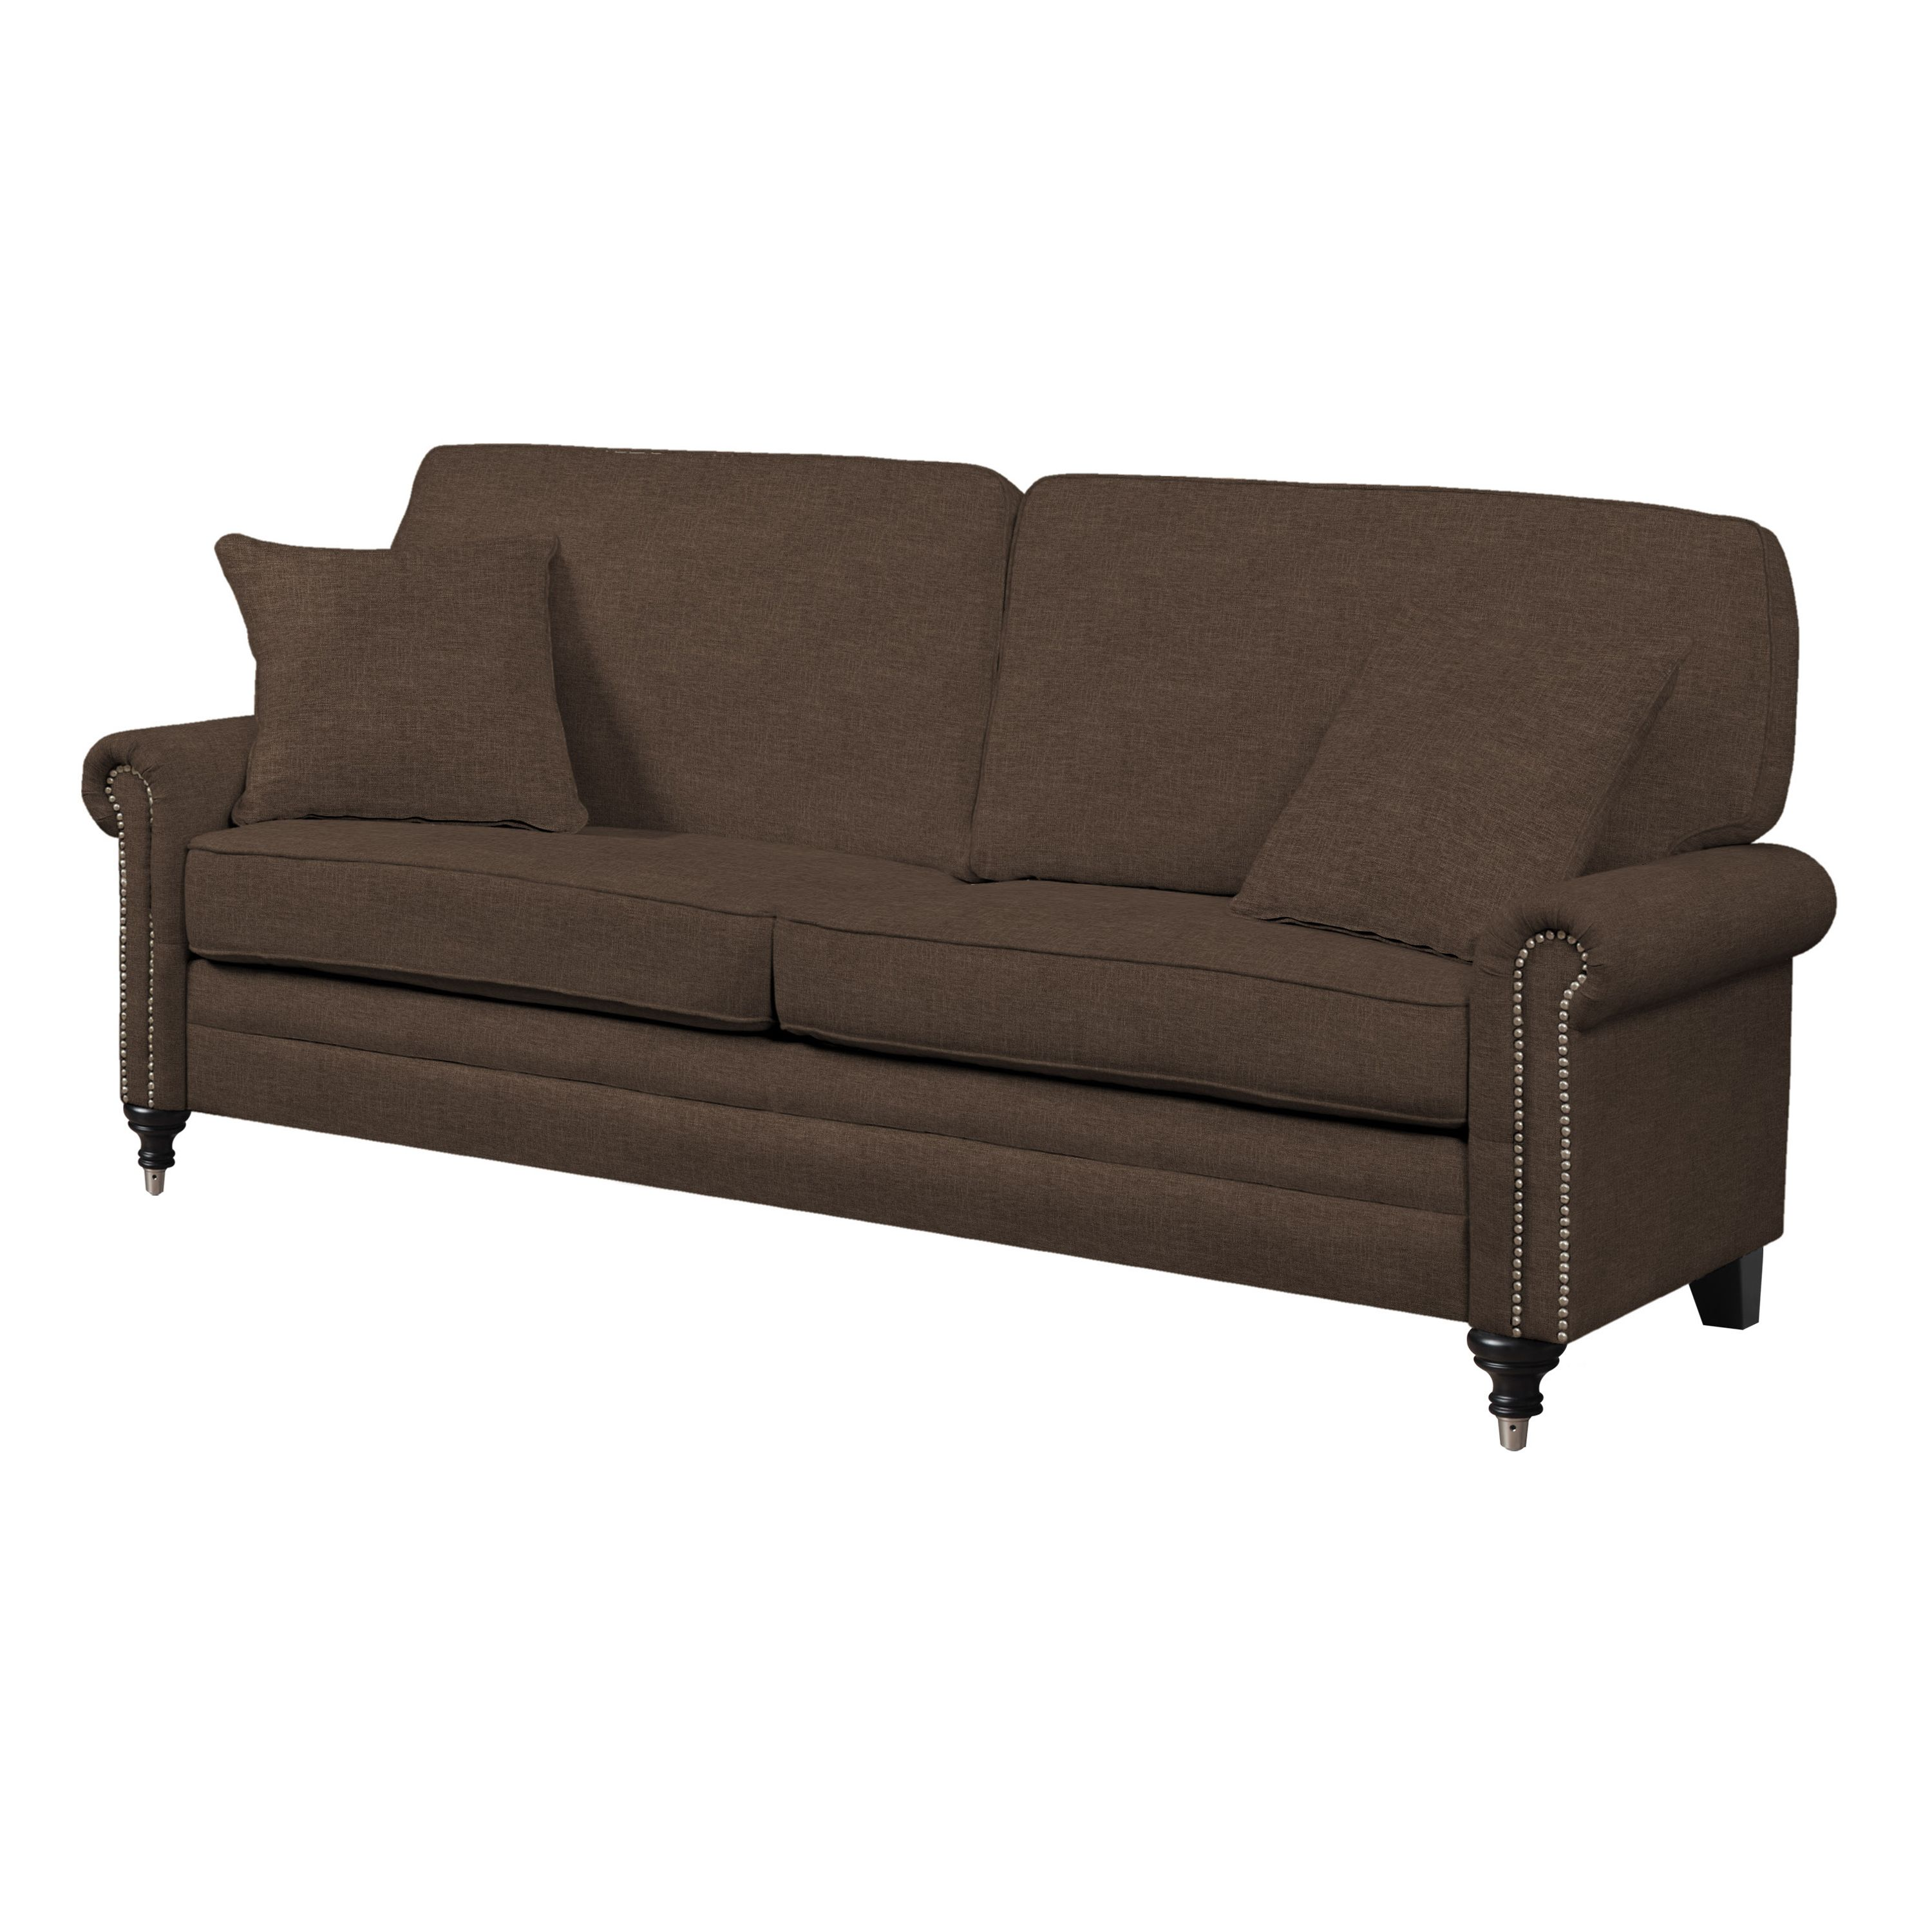 The Angelo Home Benjamin Sofa Was Designed By Angelo